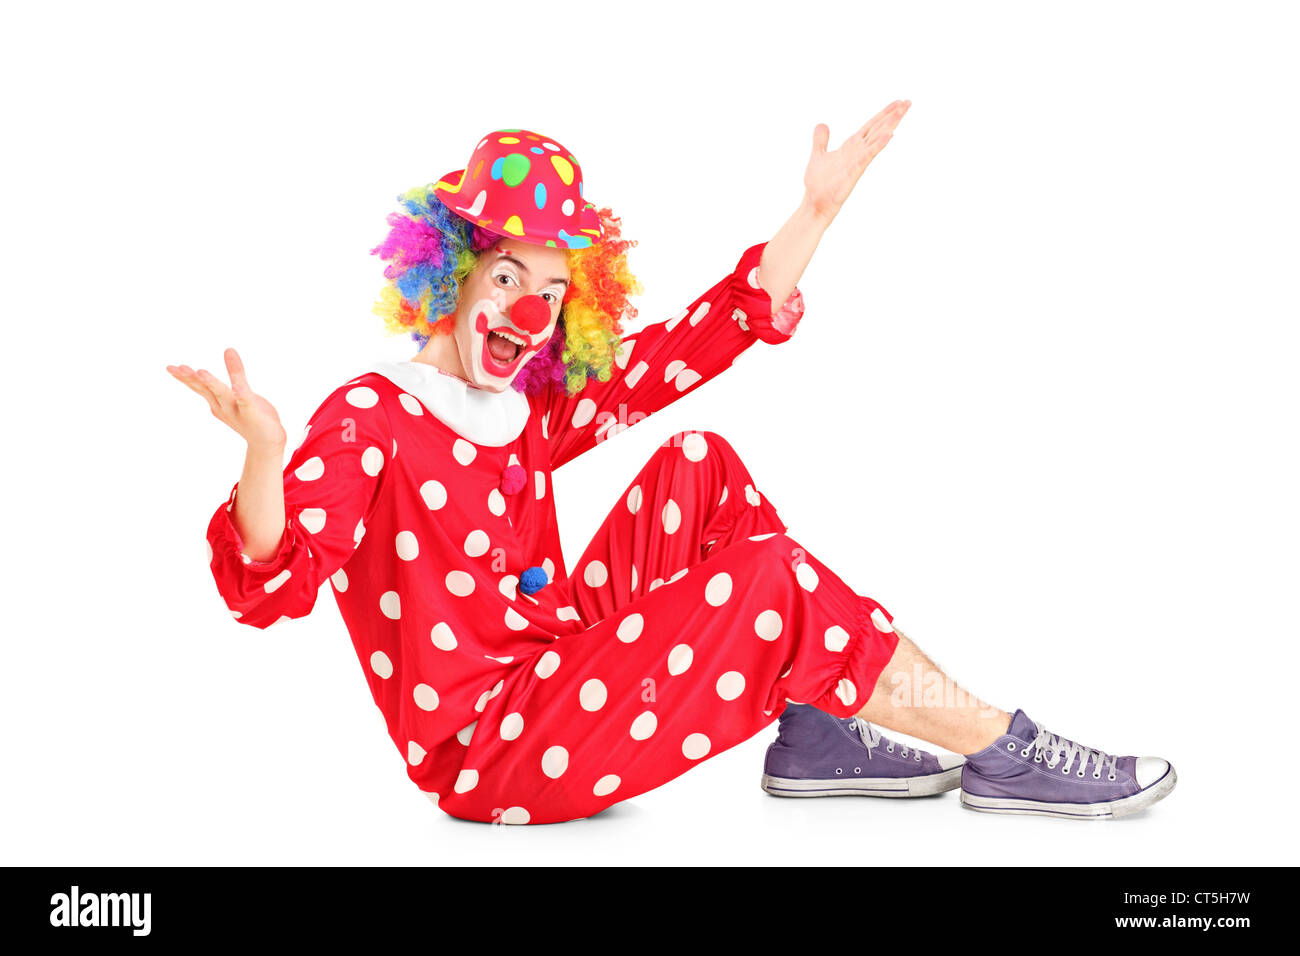 A portrait of a smiling happy clown sitting down isolated on white background - Stock Image